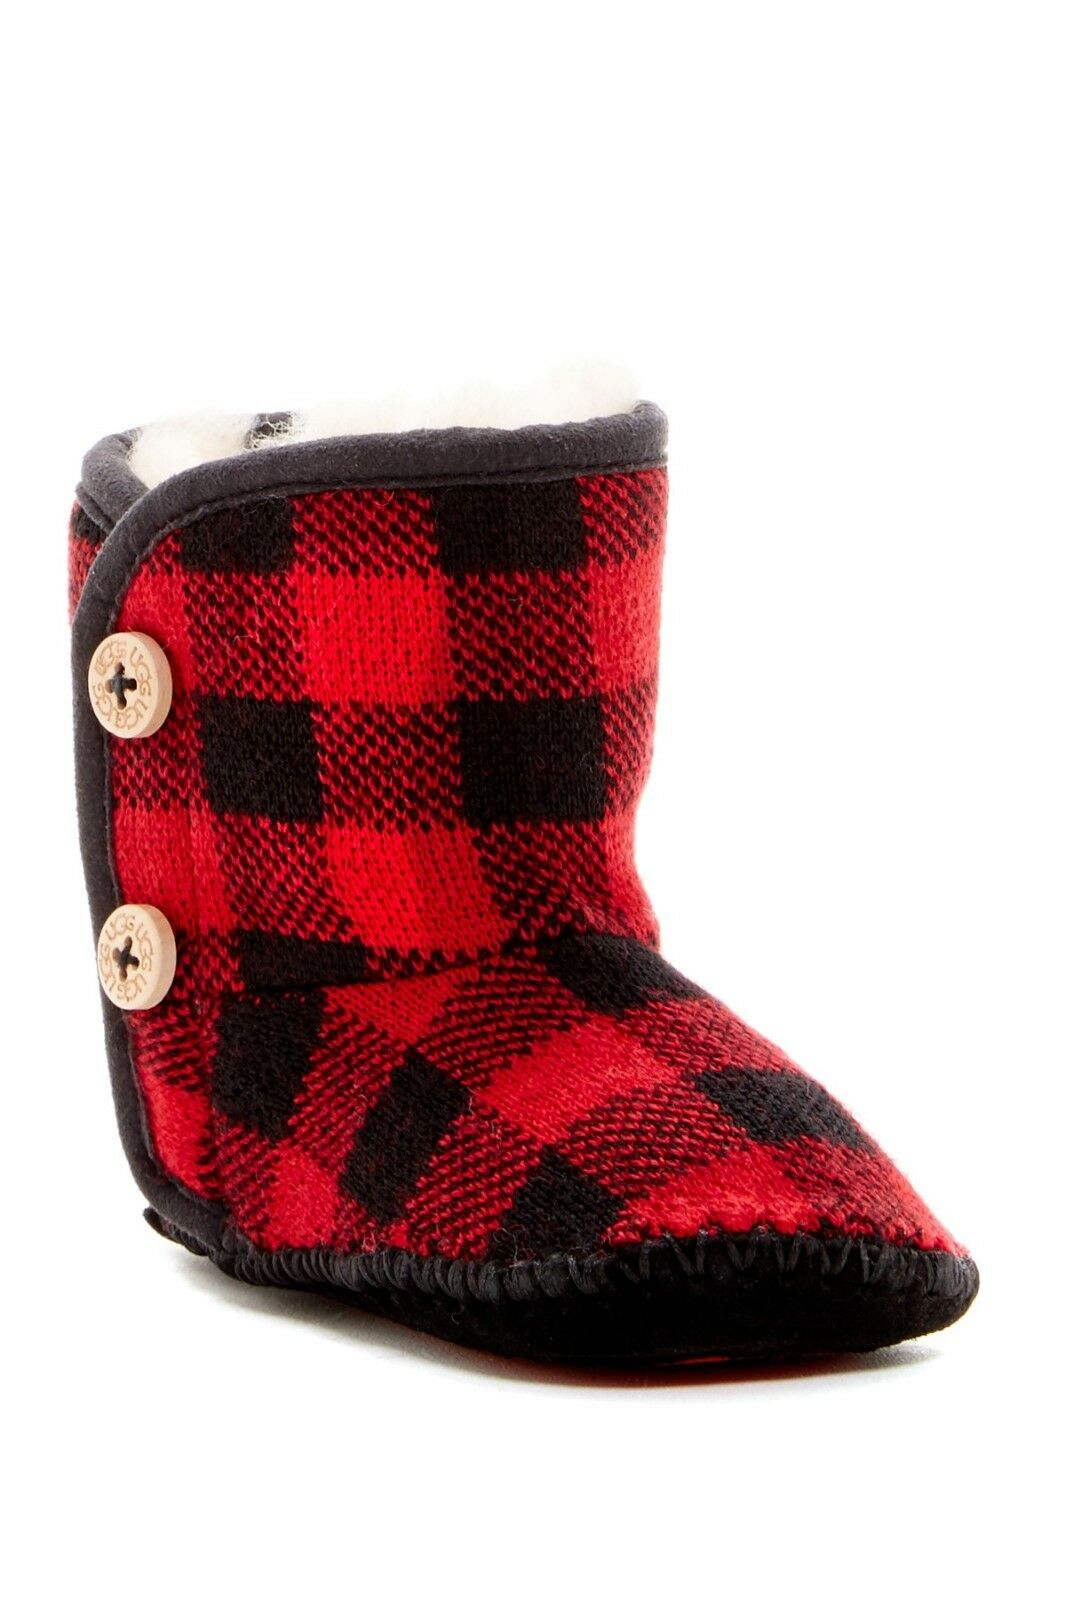 UGG Australia Red Purl Pine Button Boot for Infant Size 2-3 NIB $60